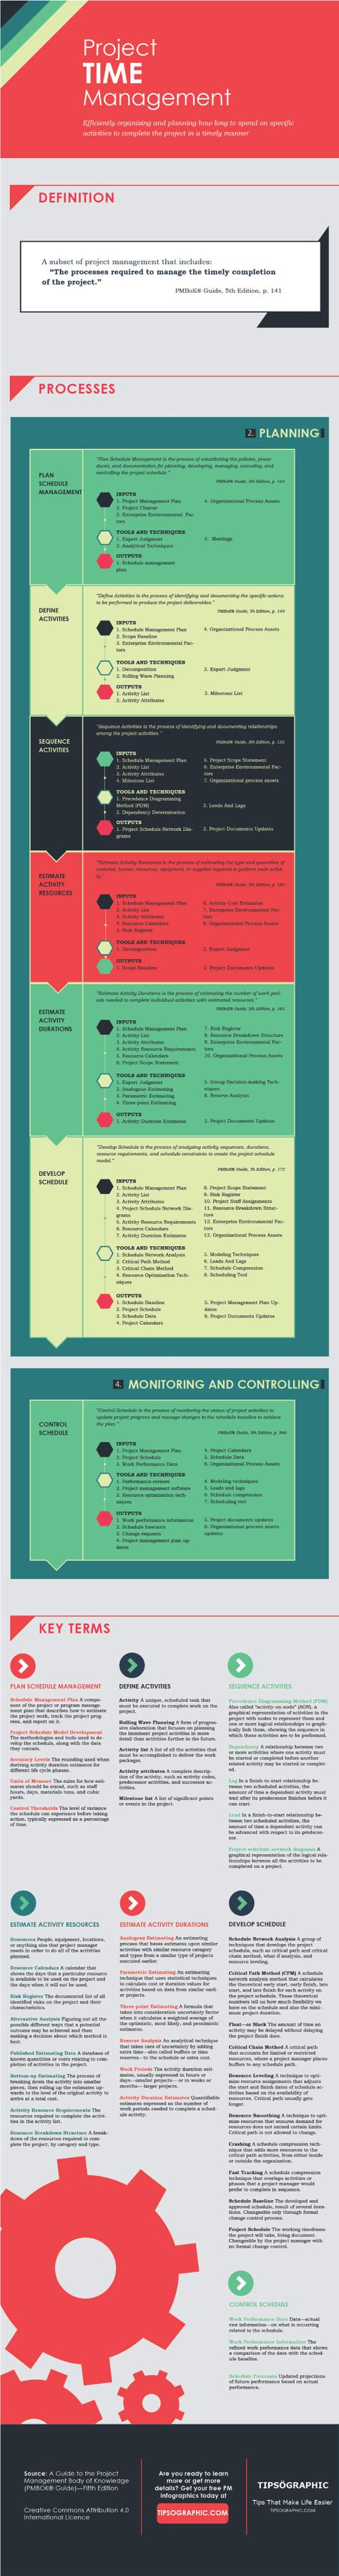 Xellentros pmp certification course overview pmp certification xellentros pmp certification course overview pmp certification pinterest xflitez Image collections